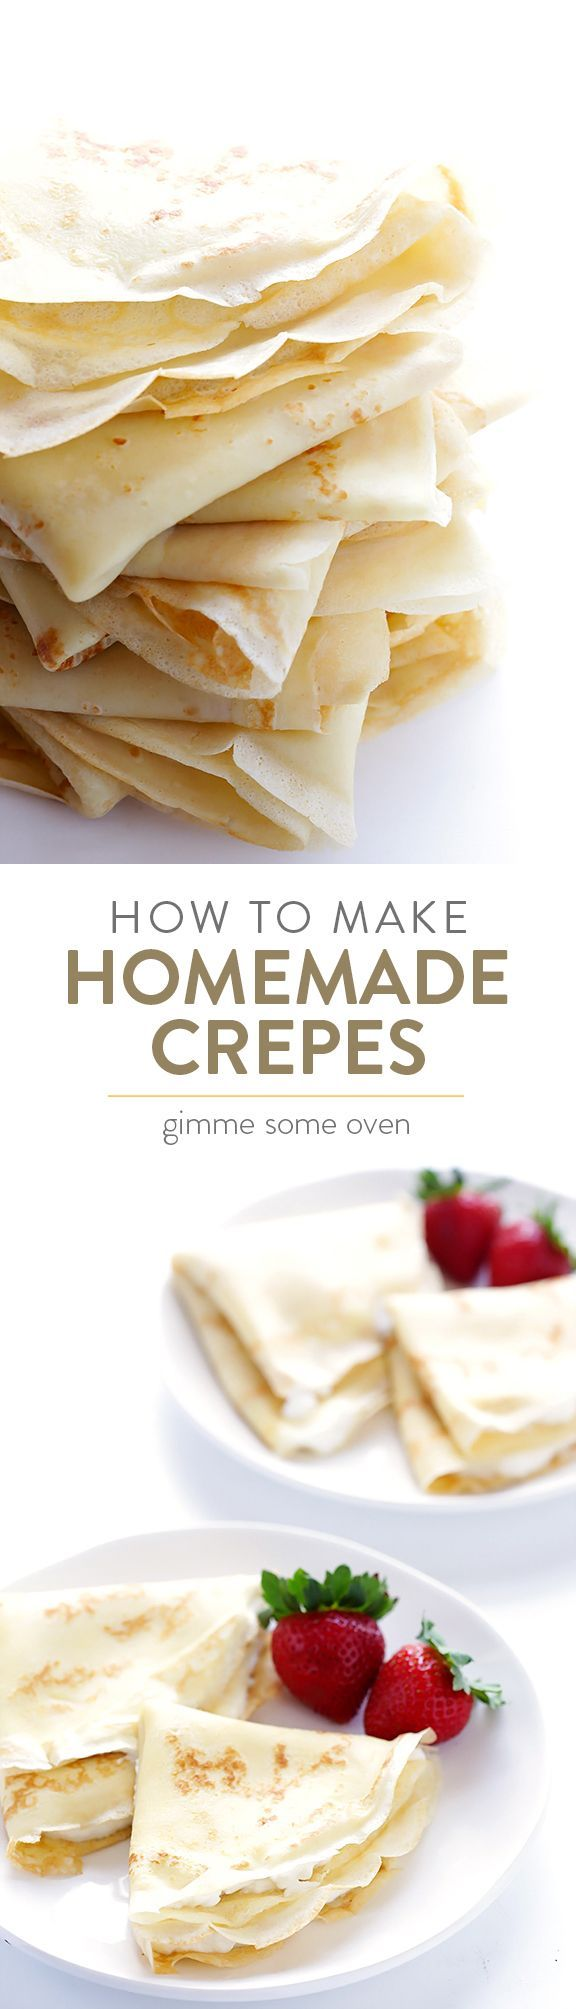 Learn how to make homemade crepes with this easy recipe and step-by-step tutorial! | gimmesomeoven.com